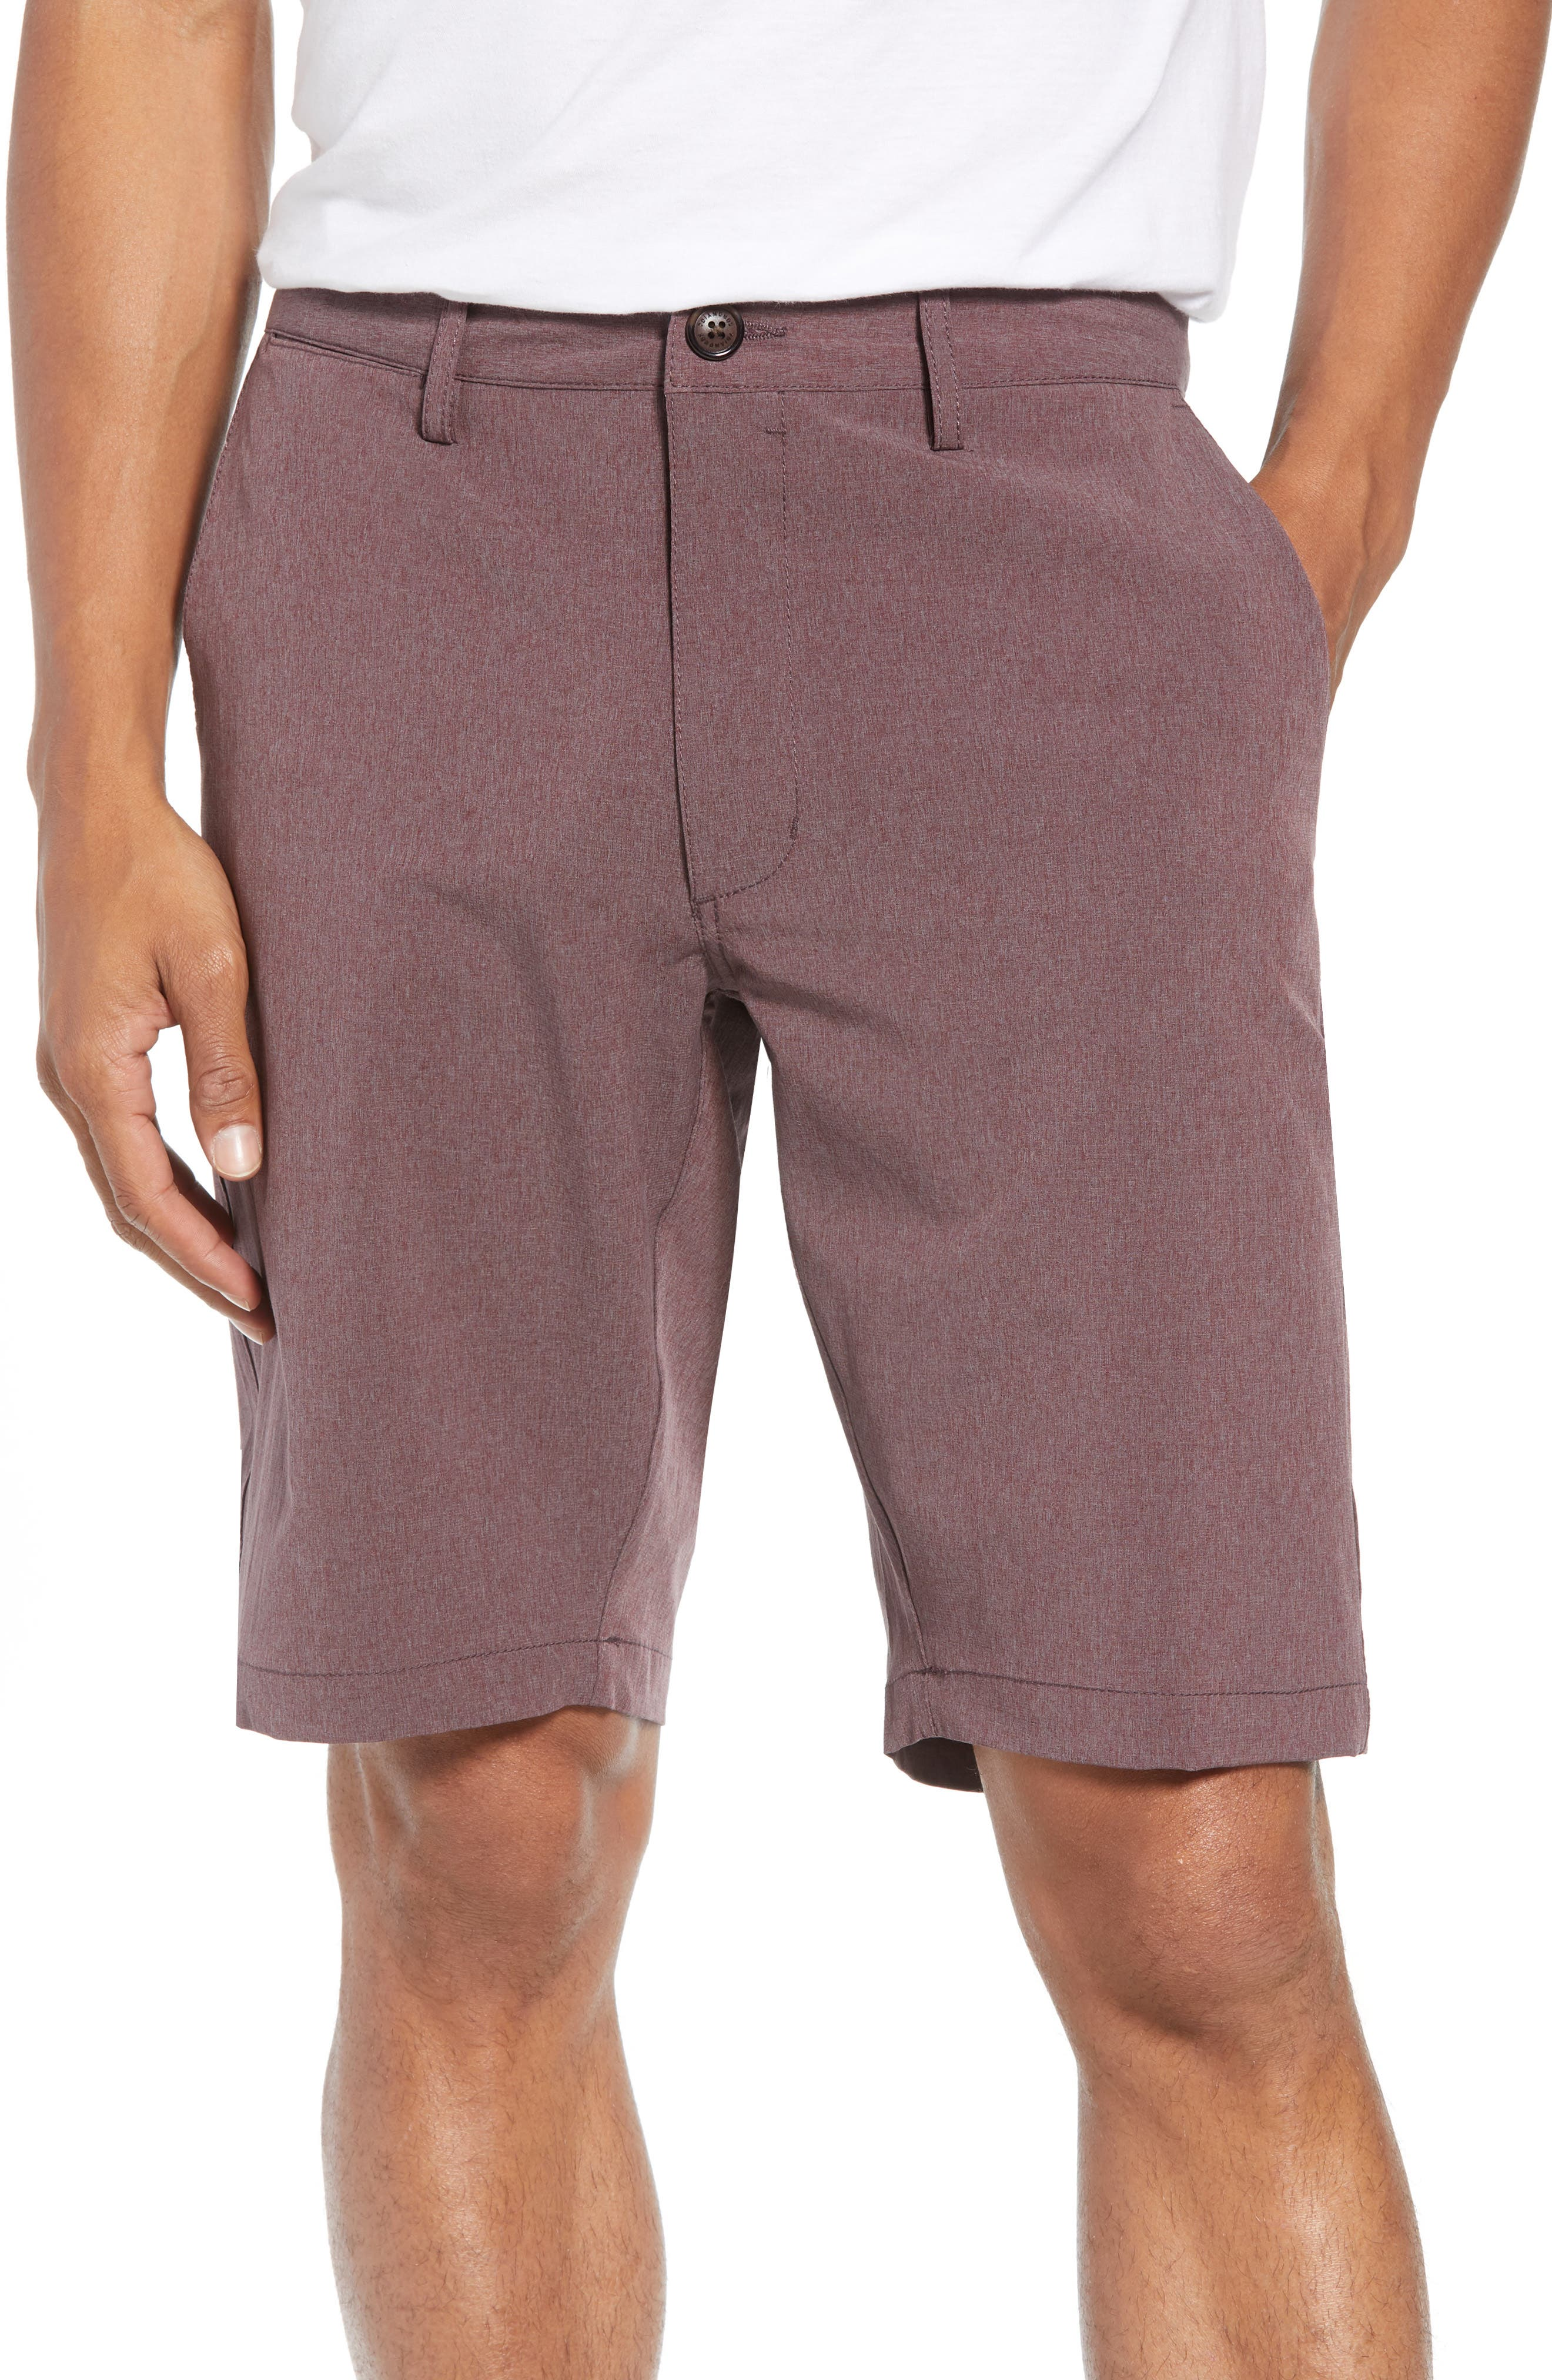 Adrenaline Stretch Shorts,                             Main thumbnail 1, color,                             Berry